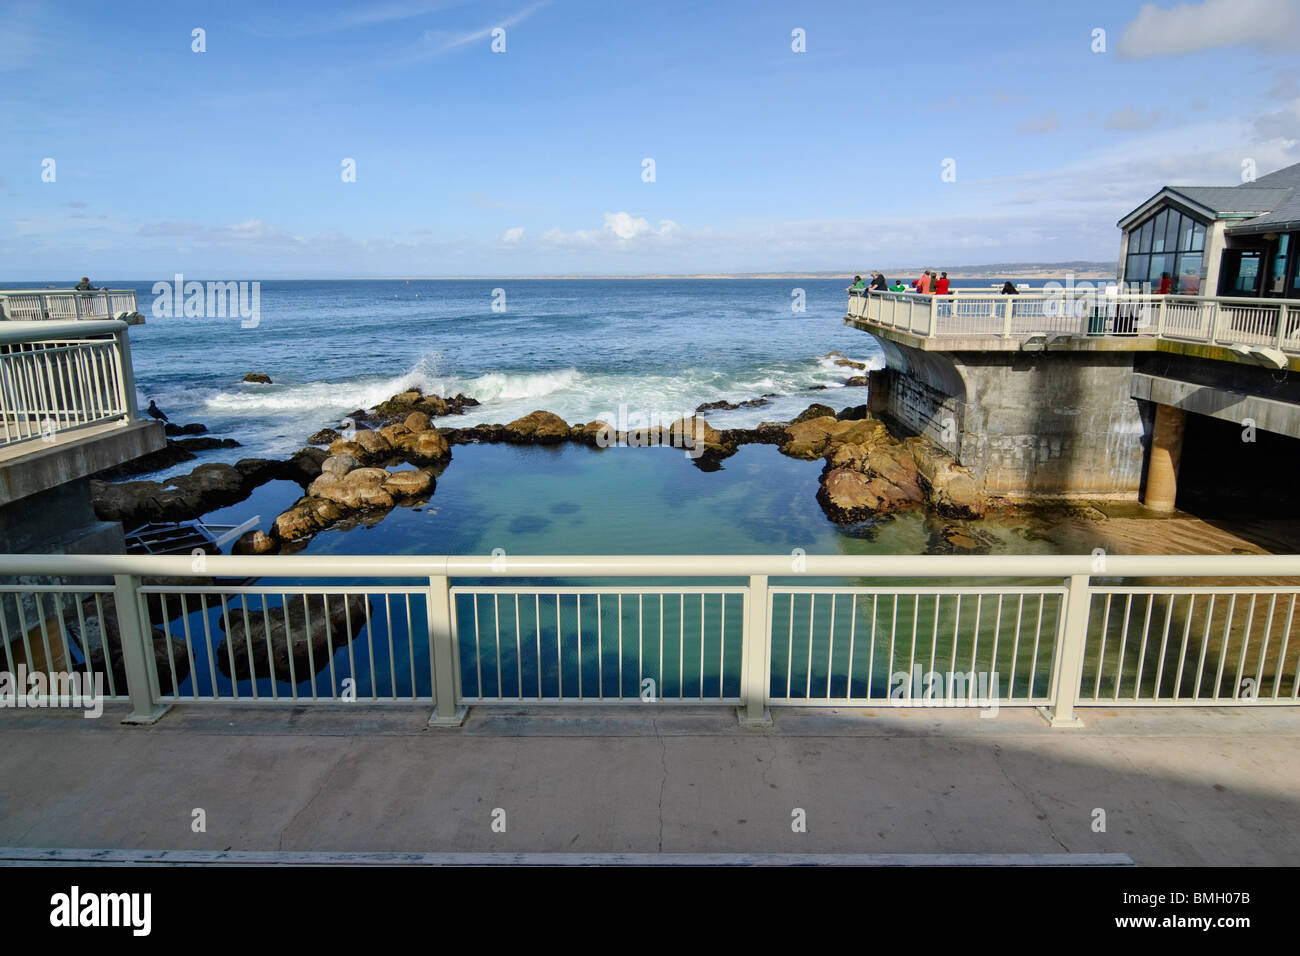 Exterior view of the Monterey Bay Aquarium along the Pacific Ocean. The Great Tide Pool amphitheater can be seen. - Stock Image